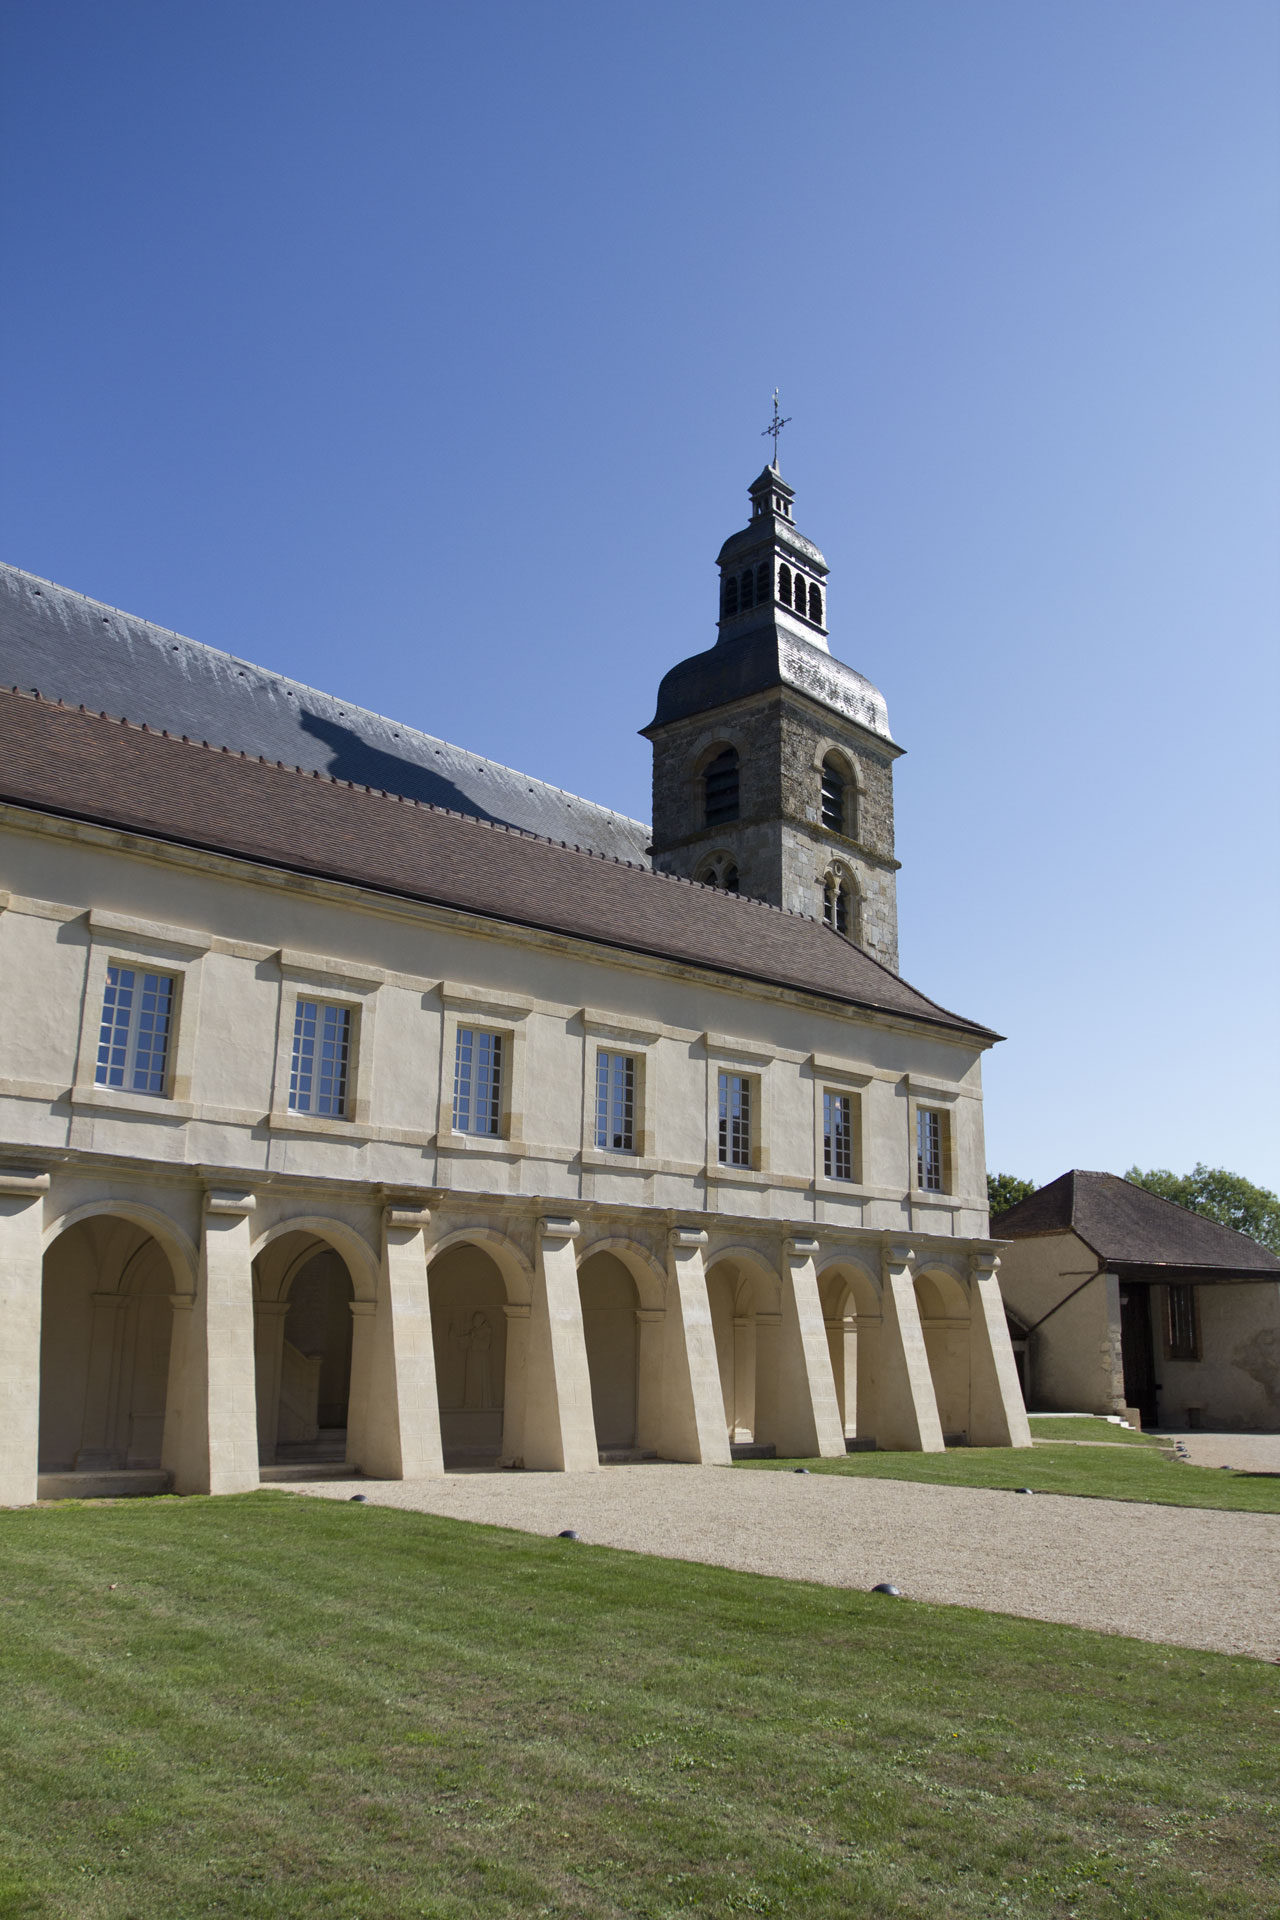 The Abbey of Saint-Pierre in Hautvillers, France, photo by Costas Voyatzis for Yatzer.